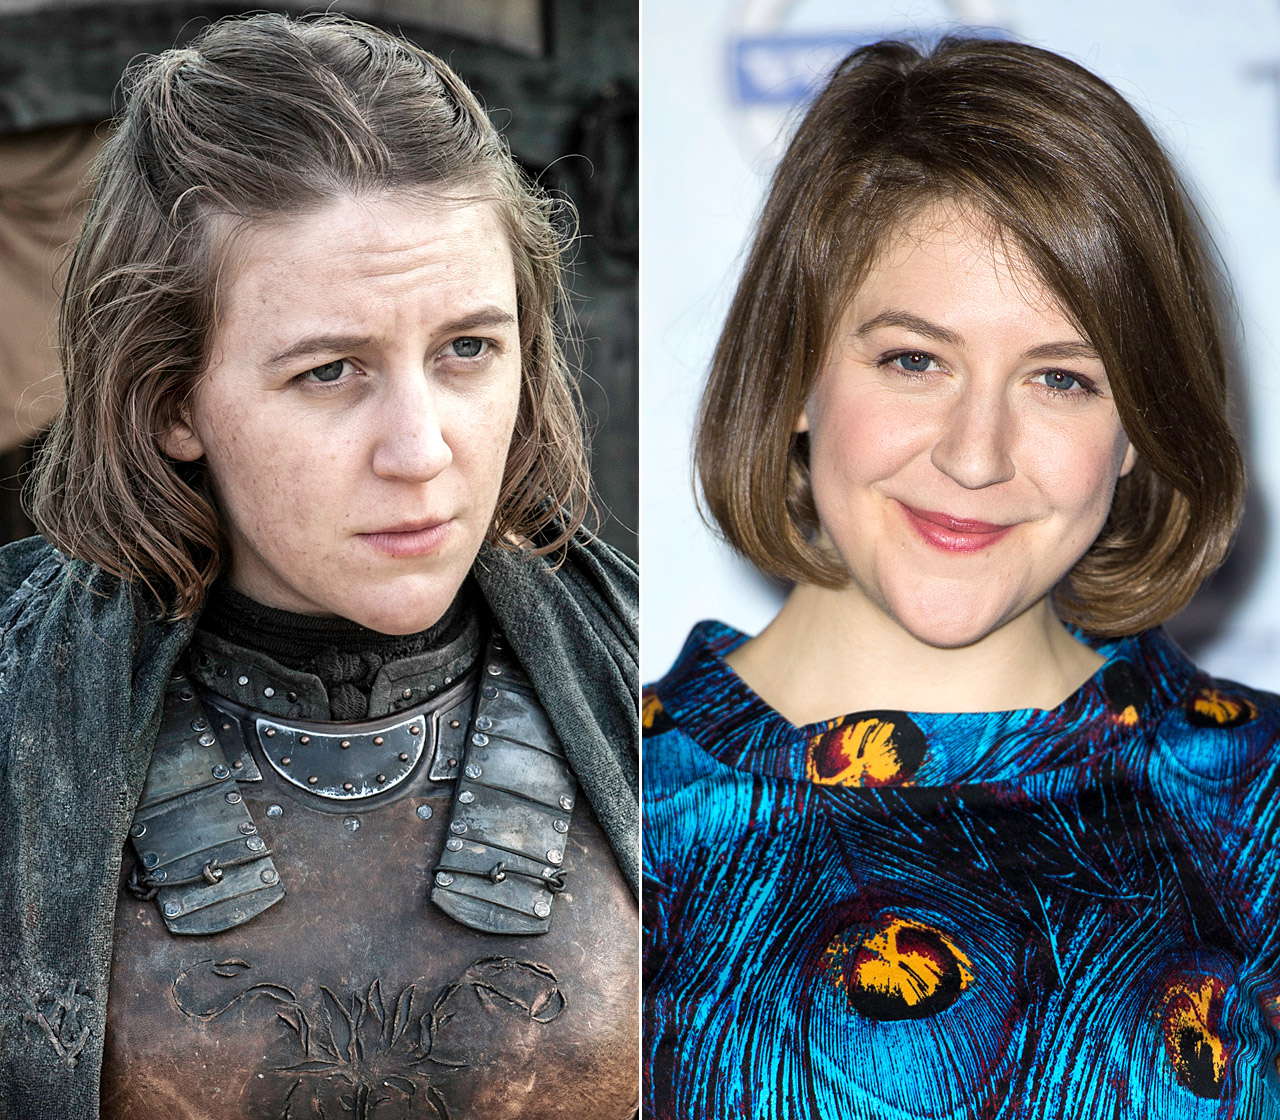 She's a long way from the Iron Islands! Whelan, who plays Princess Asha Yara Greyjoy on the show, typically looks and acts rough and tough as the commander of her own longship.